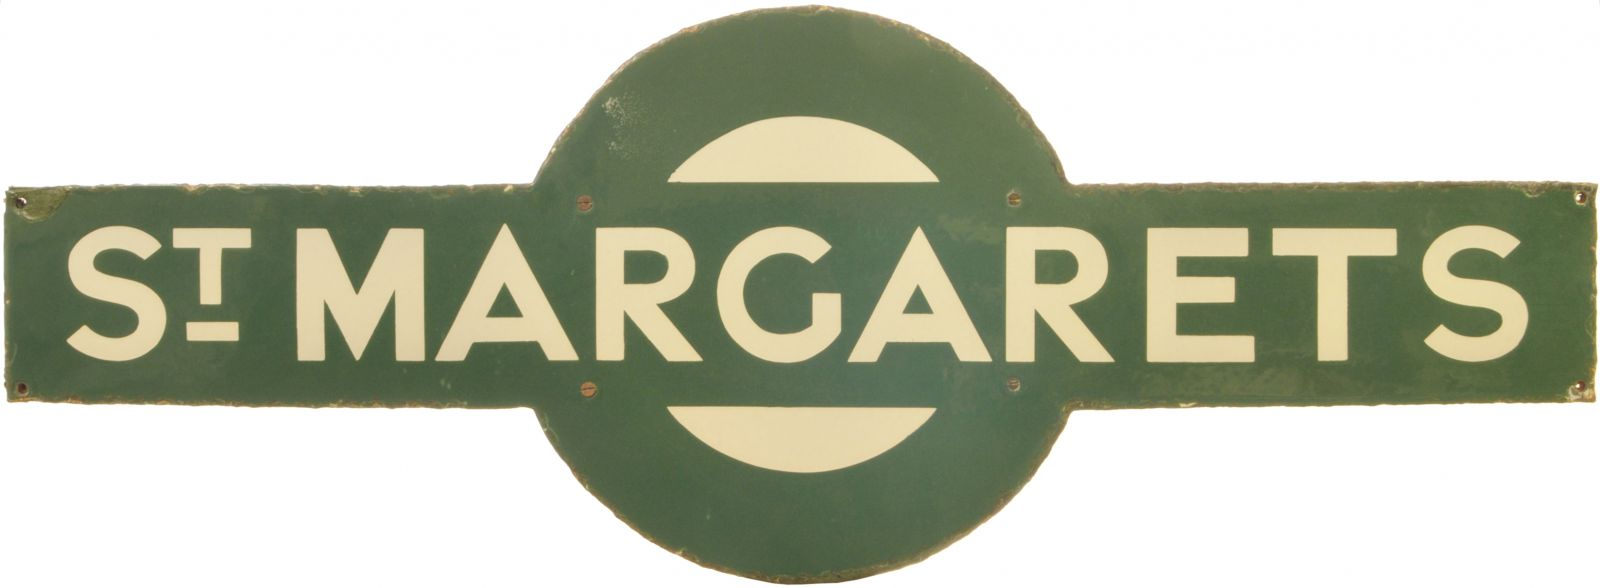 Lot 28 - Railway Station Target Signs, St Margarets: A Southern Railway target sign, ST MARGARETS, a